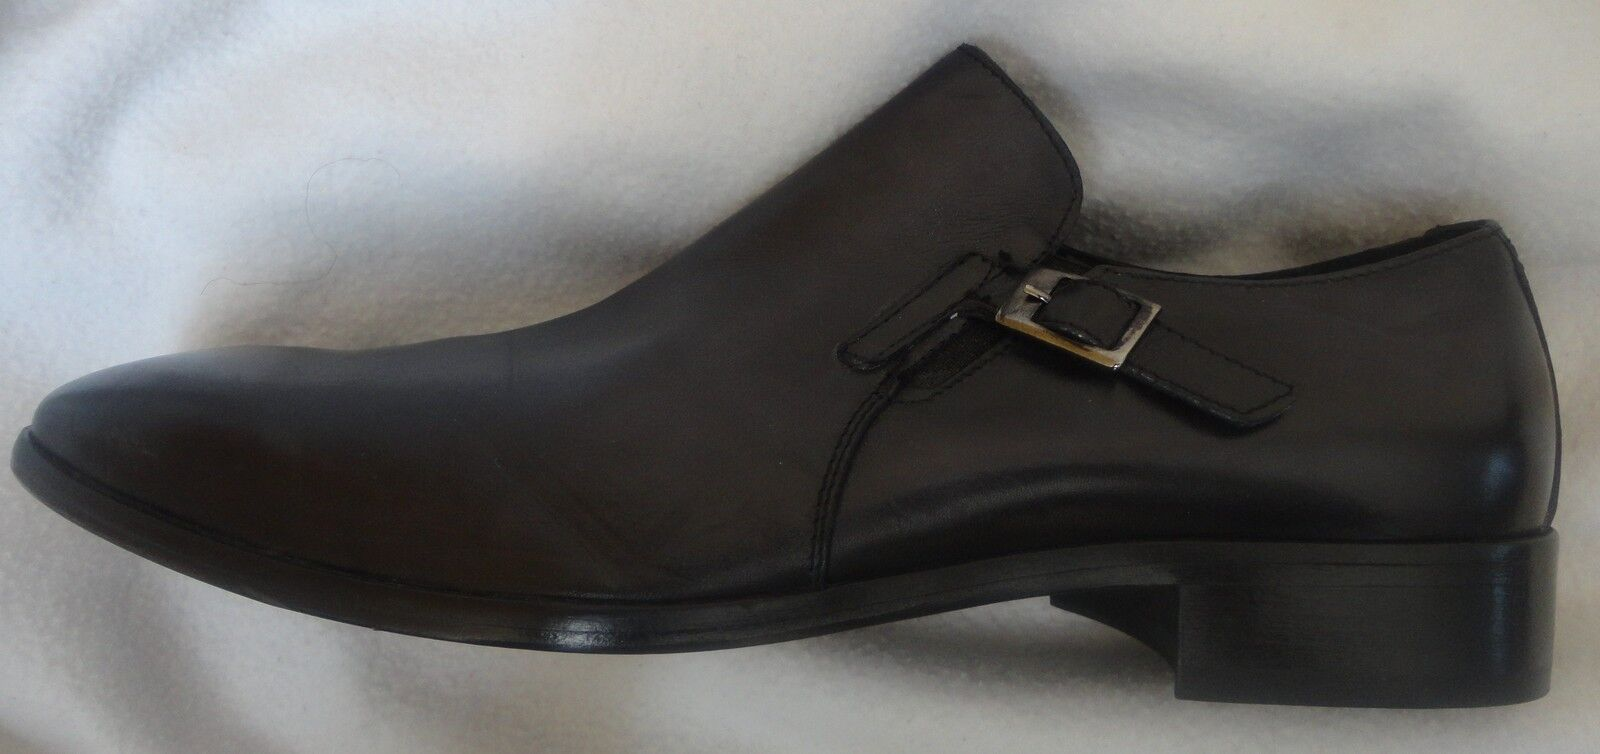 ITALIAN LEATHER SLIP ON FOR MEN BLACK SHOES SIZE US 9.5 EURO 42 NEW